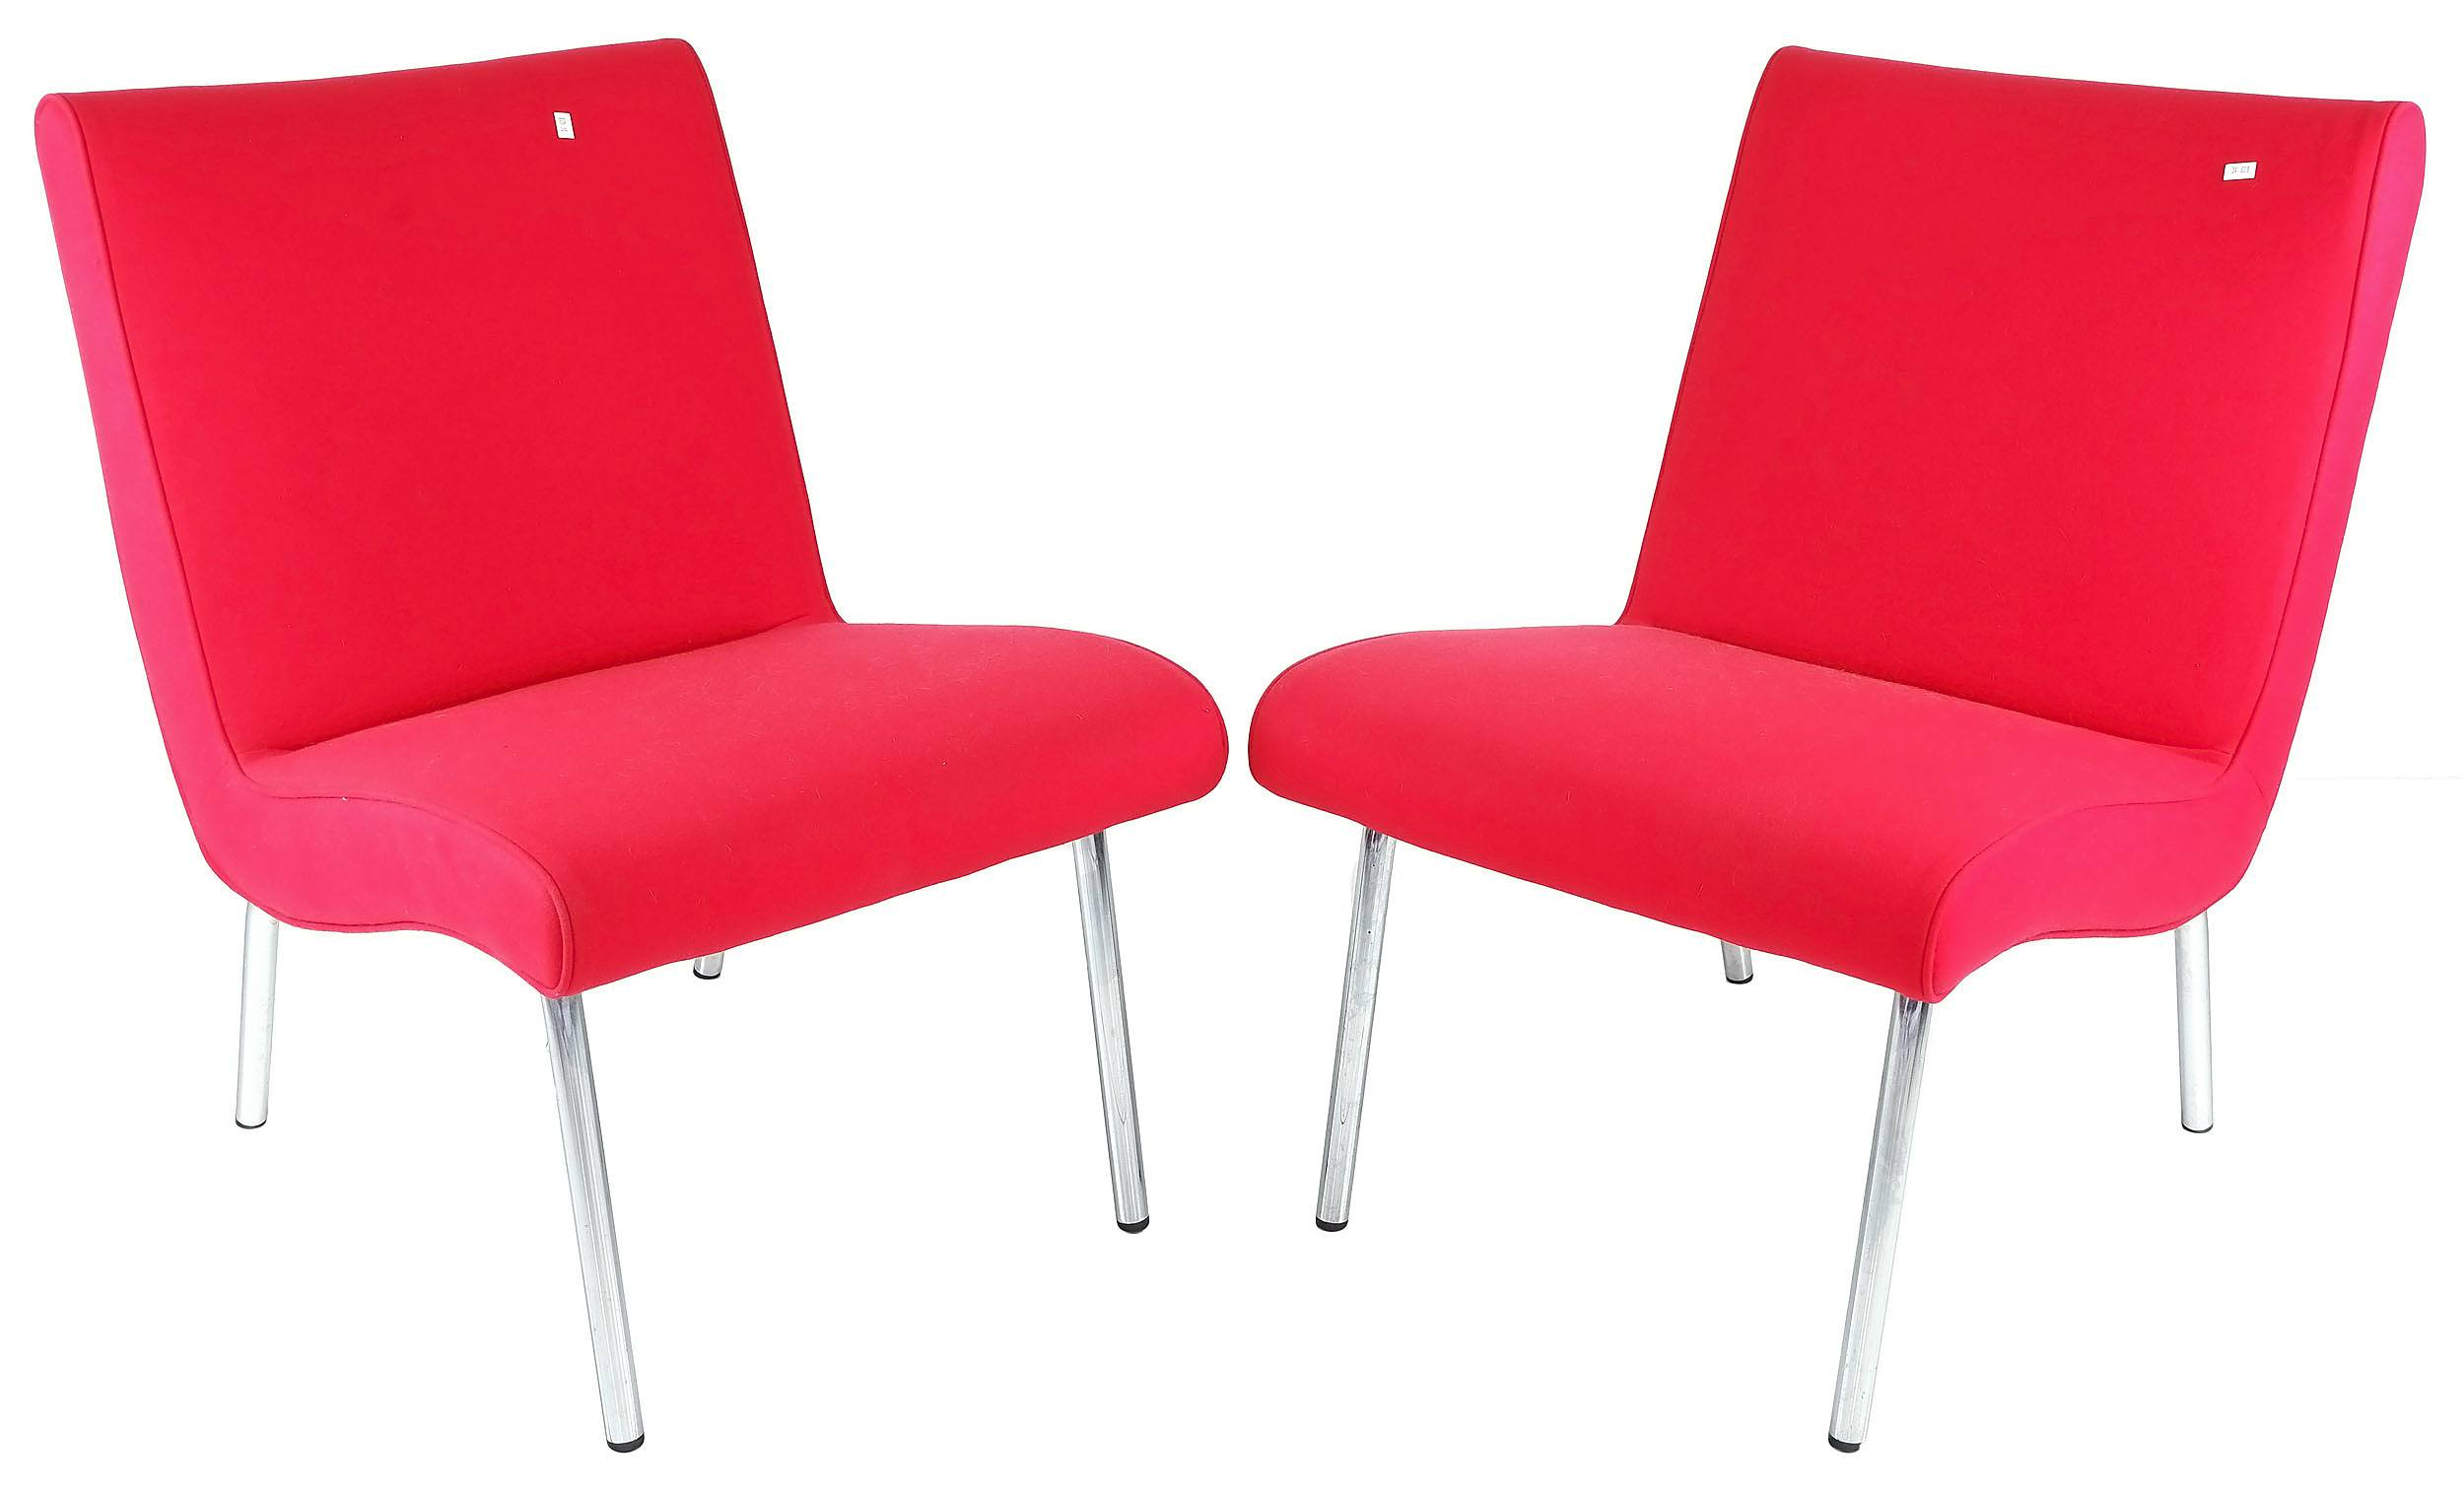 'Pair of Retro Knoll Chairs Designed by Jens Risom'